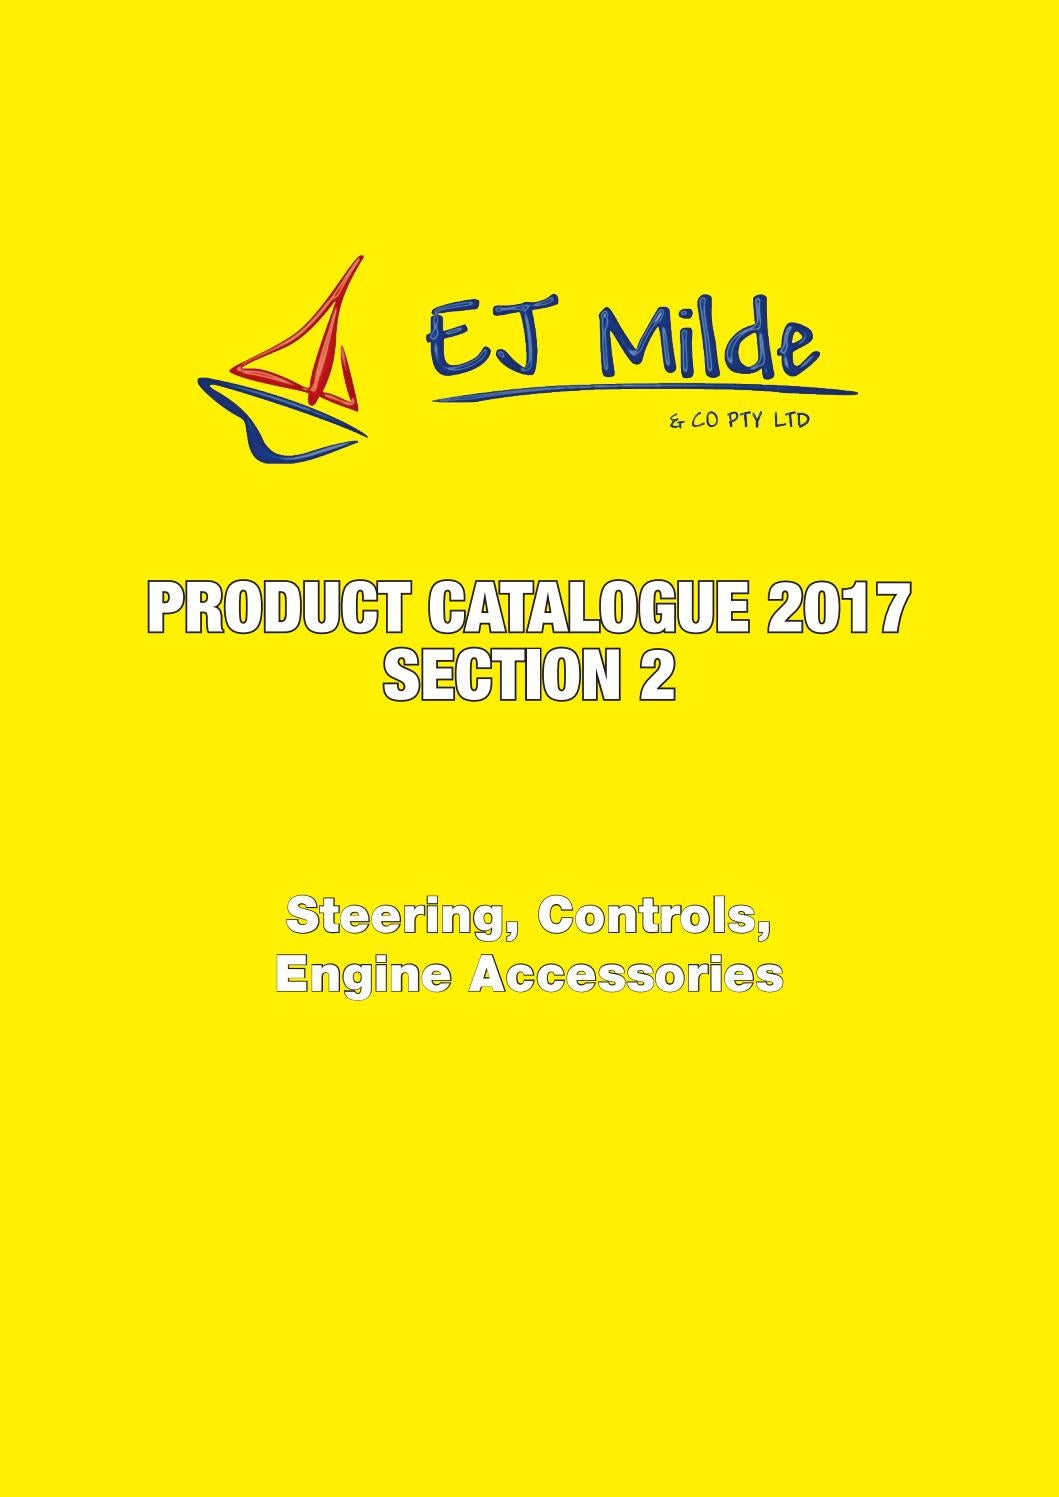 Ej Milde Product Catalogue 2017 Section 2 By Co Pty Ltd Honda Bf130 Wiring Diagram Issuu